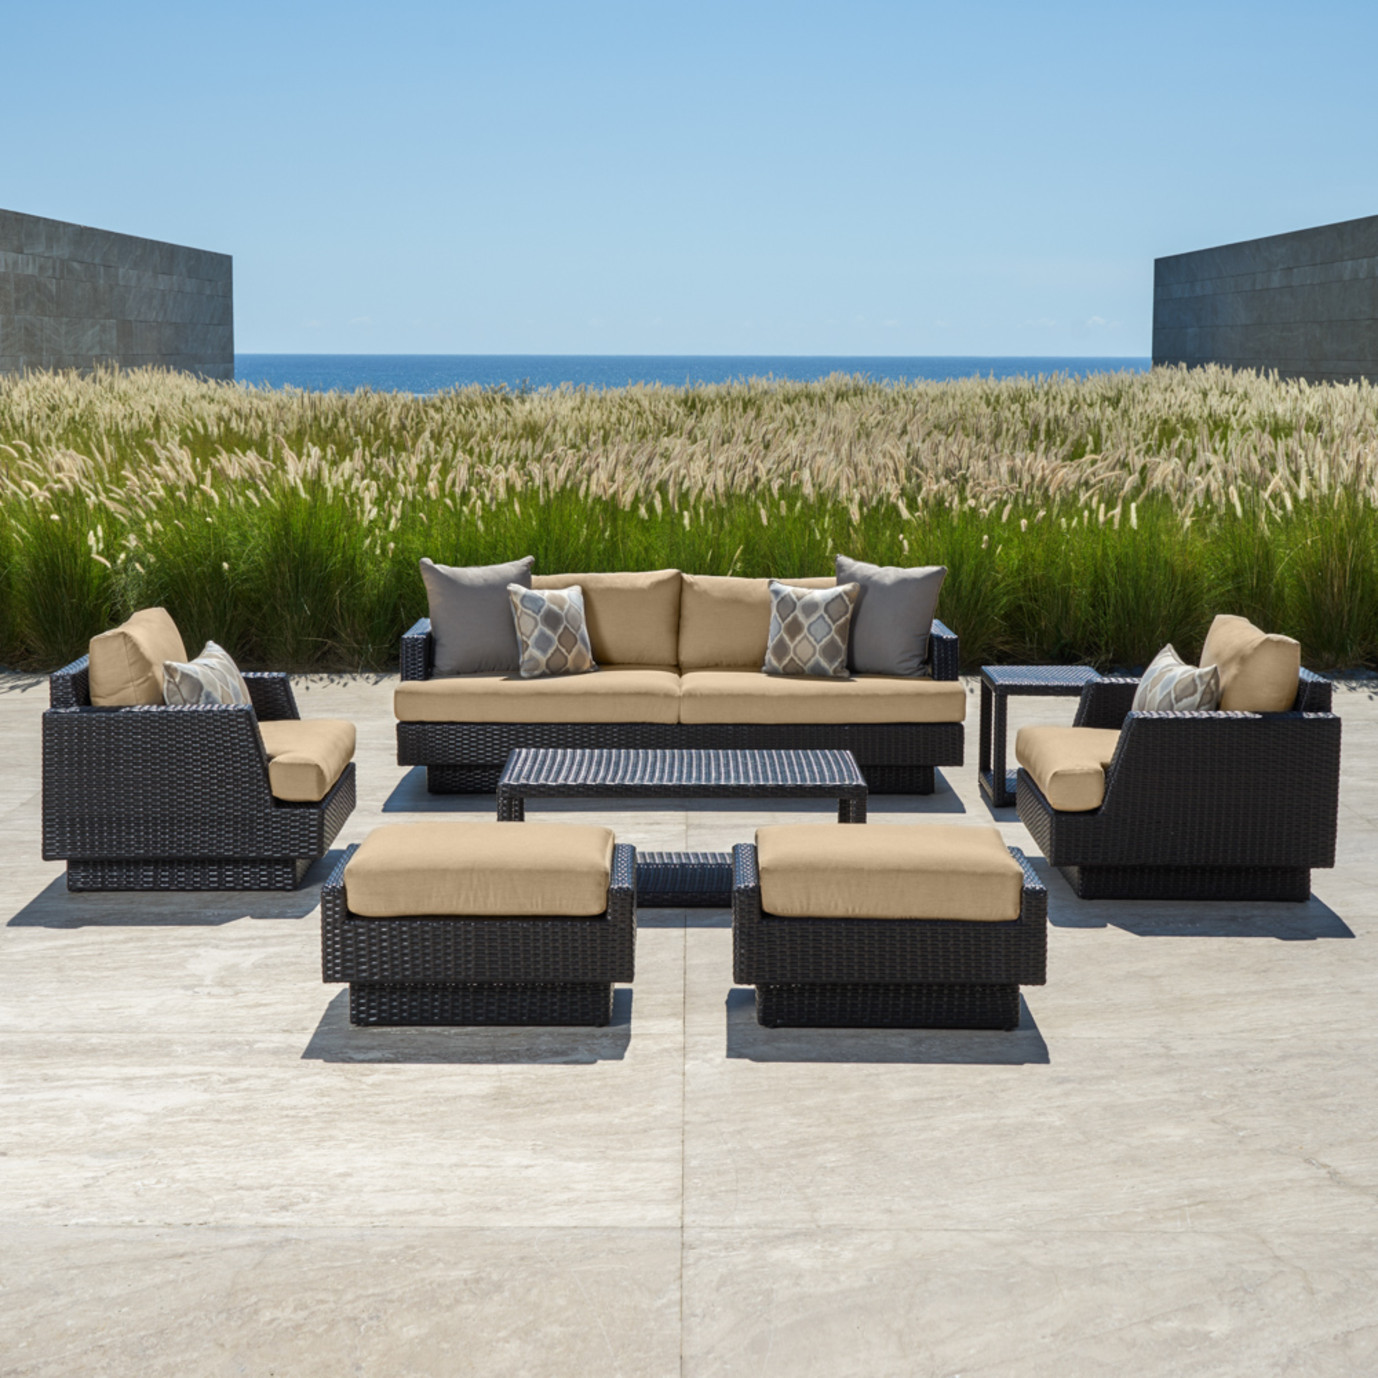 Portofino™ Comfort 7pc Deep Seating Set - Heather Beige